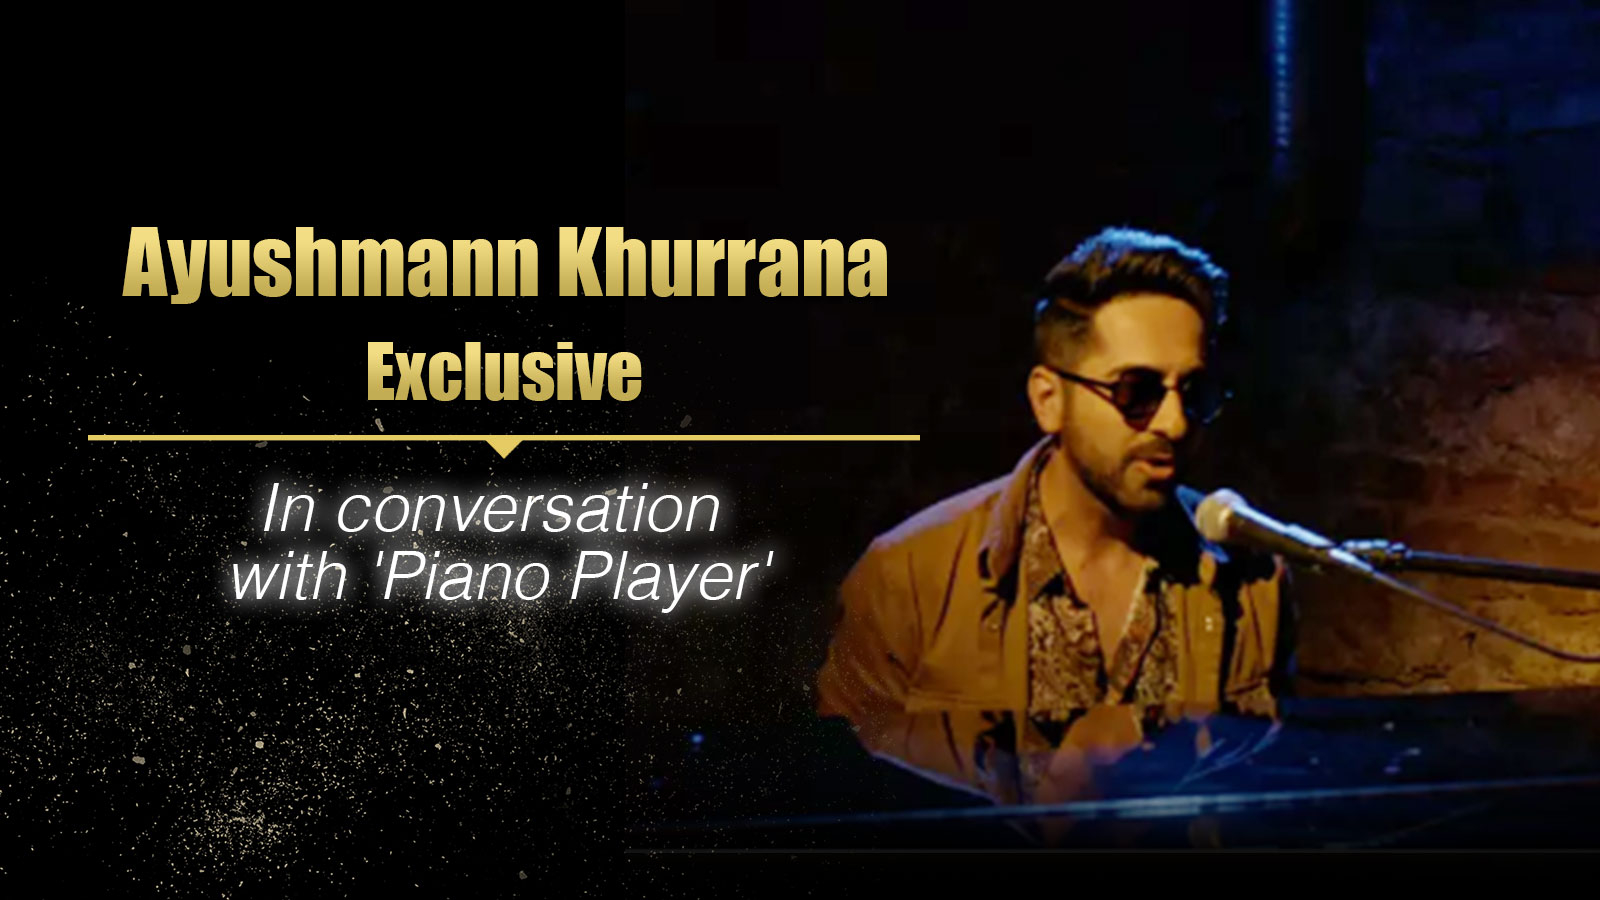 Exclusive: 'Piano Player' Ayushmann Khurrana's special